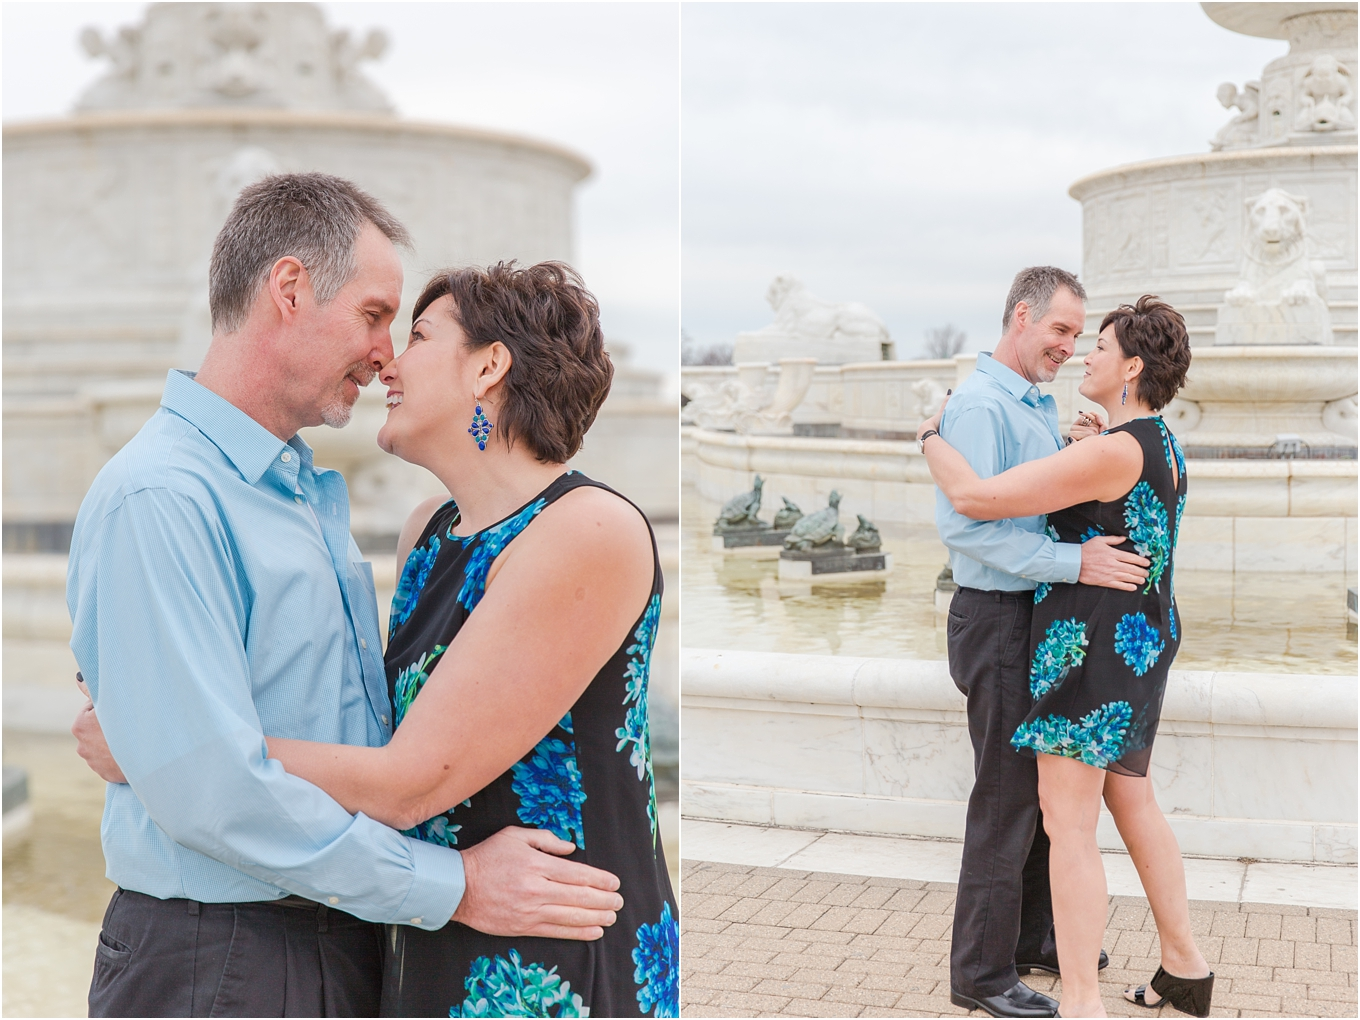 downtown-detroit-engagement-photos-on-belle-isle-by-courtney-carolyn-photography_0002.jpg